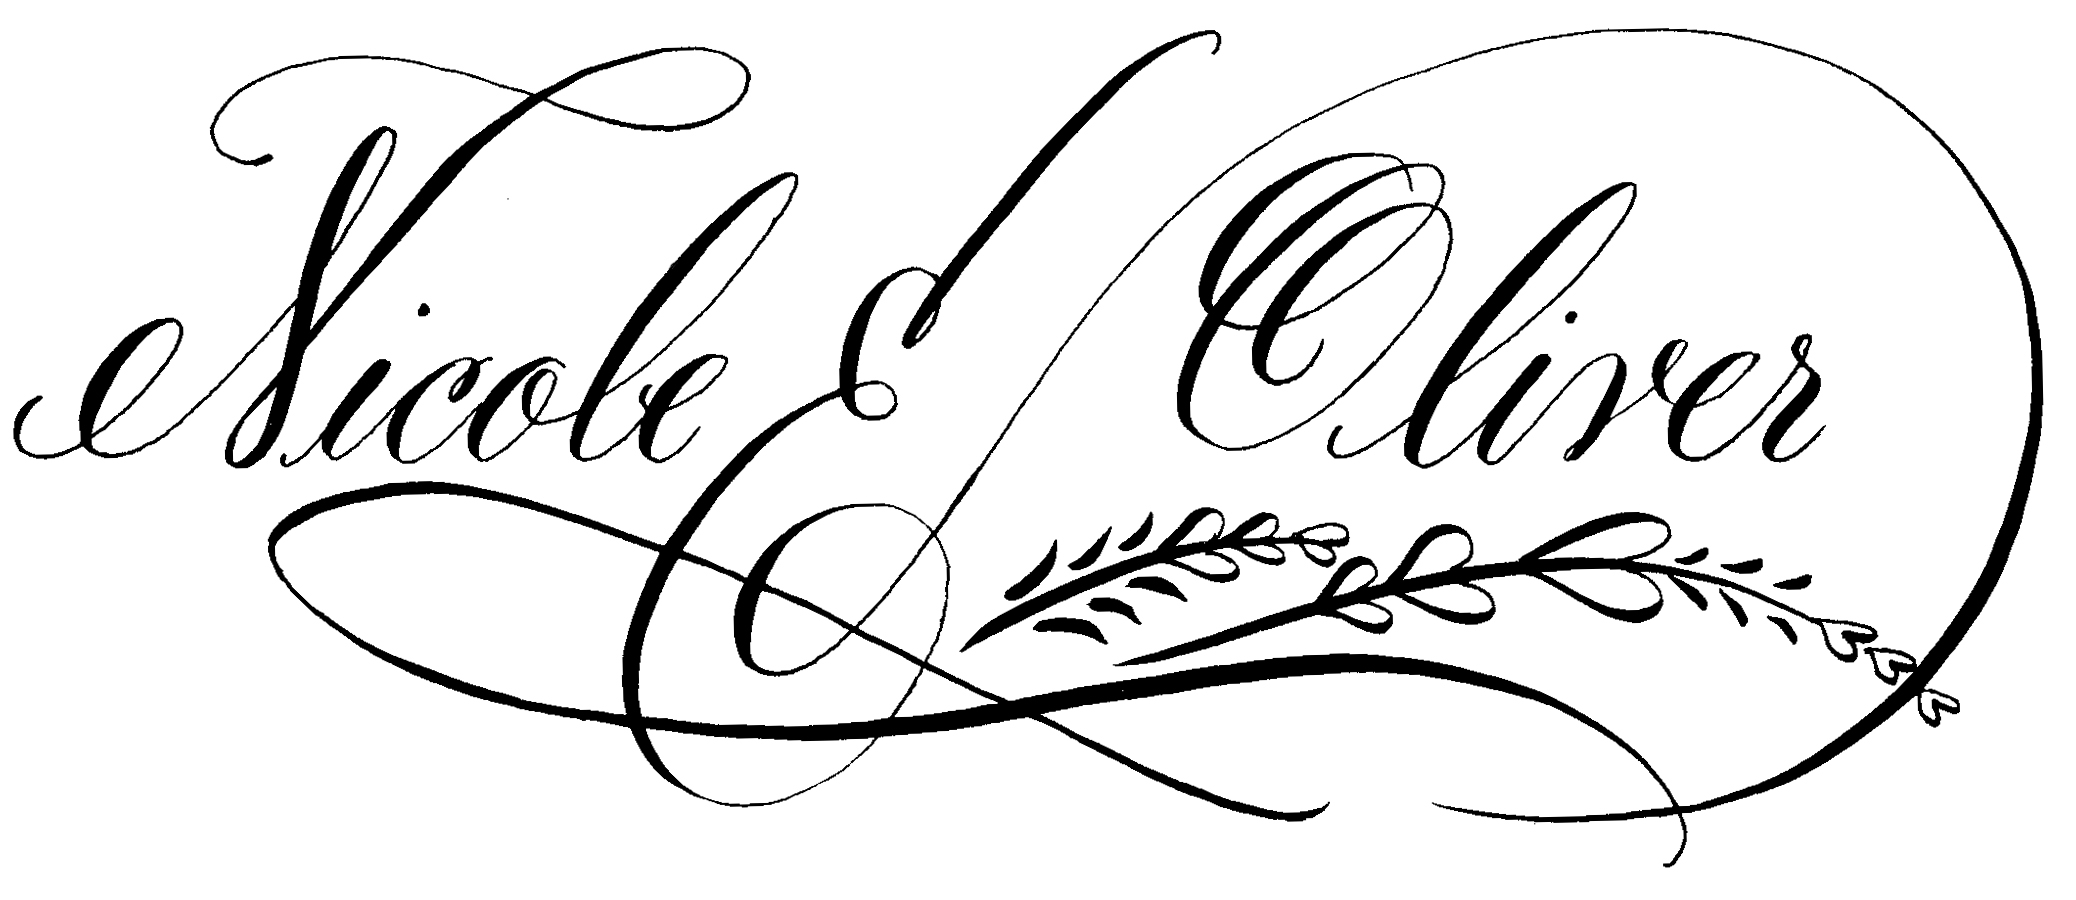 Lettering art studio calligraphy give away lettering My name in calligraphy